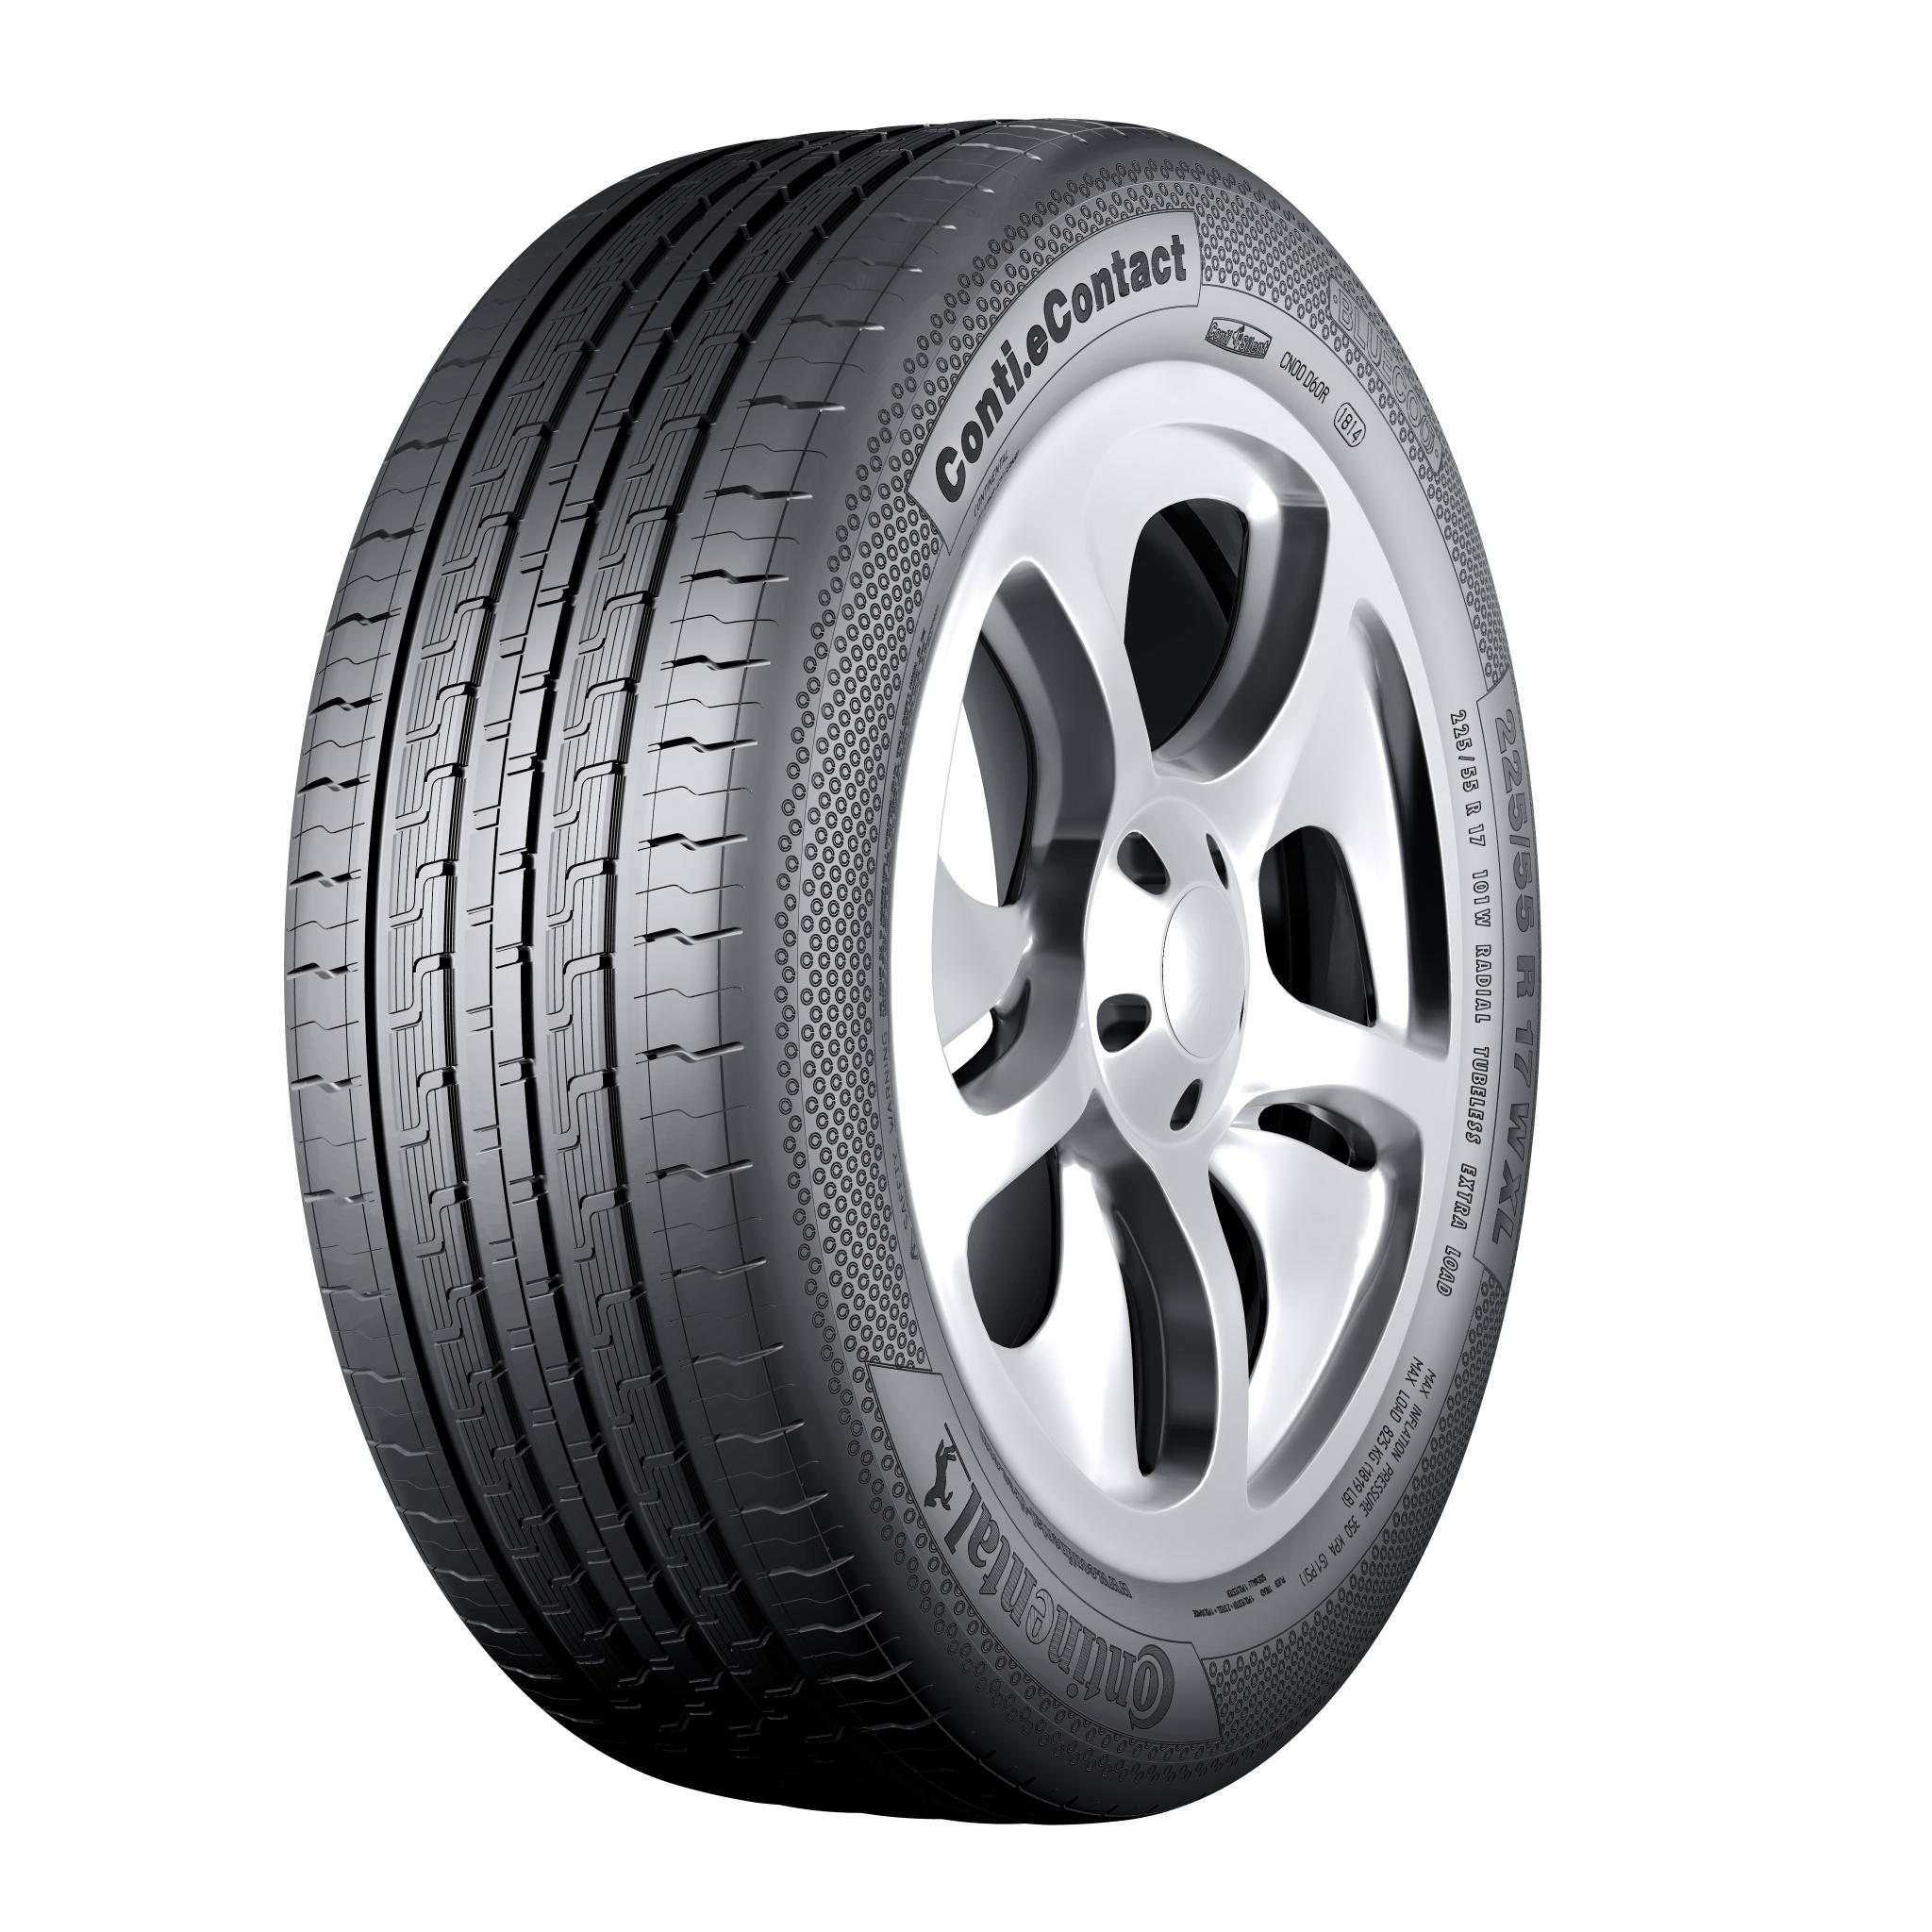 Conti.eContact tire